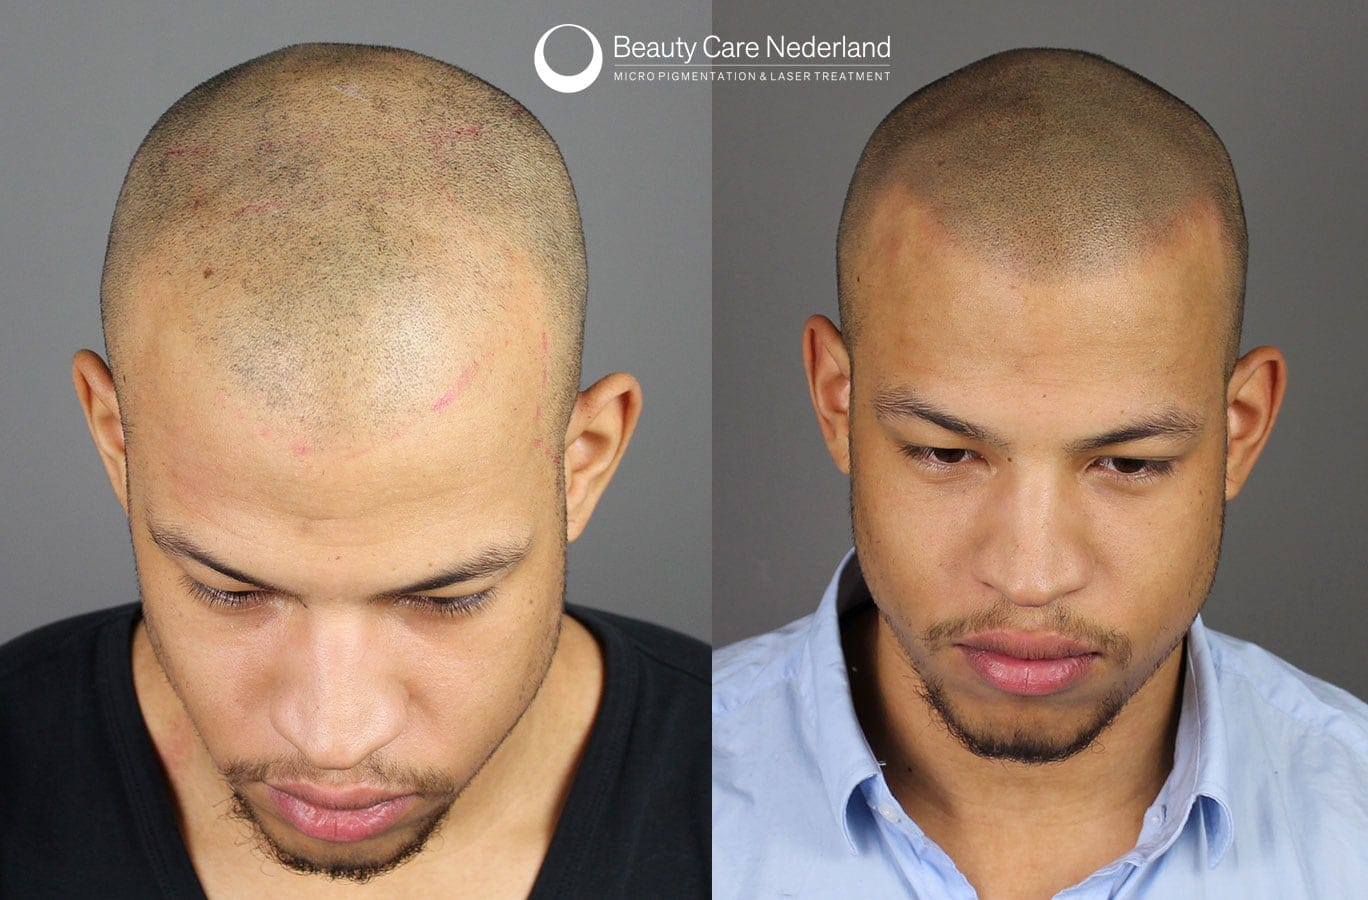 Scalp Micropigmentation Beauty Care Nederland The